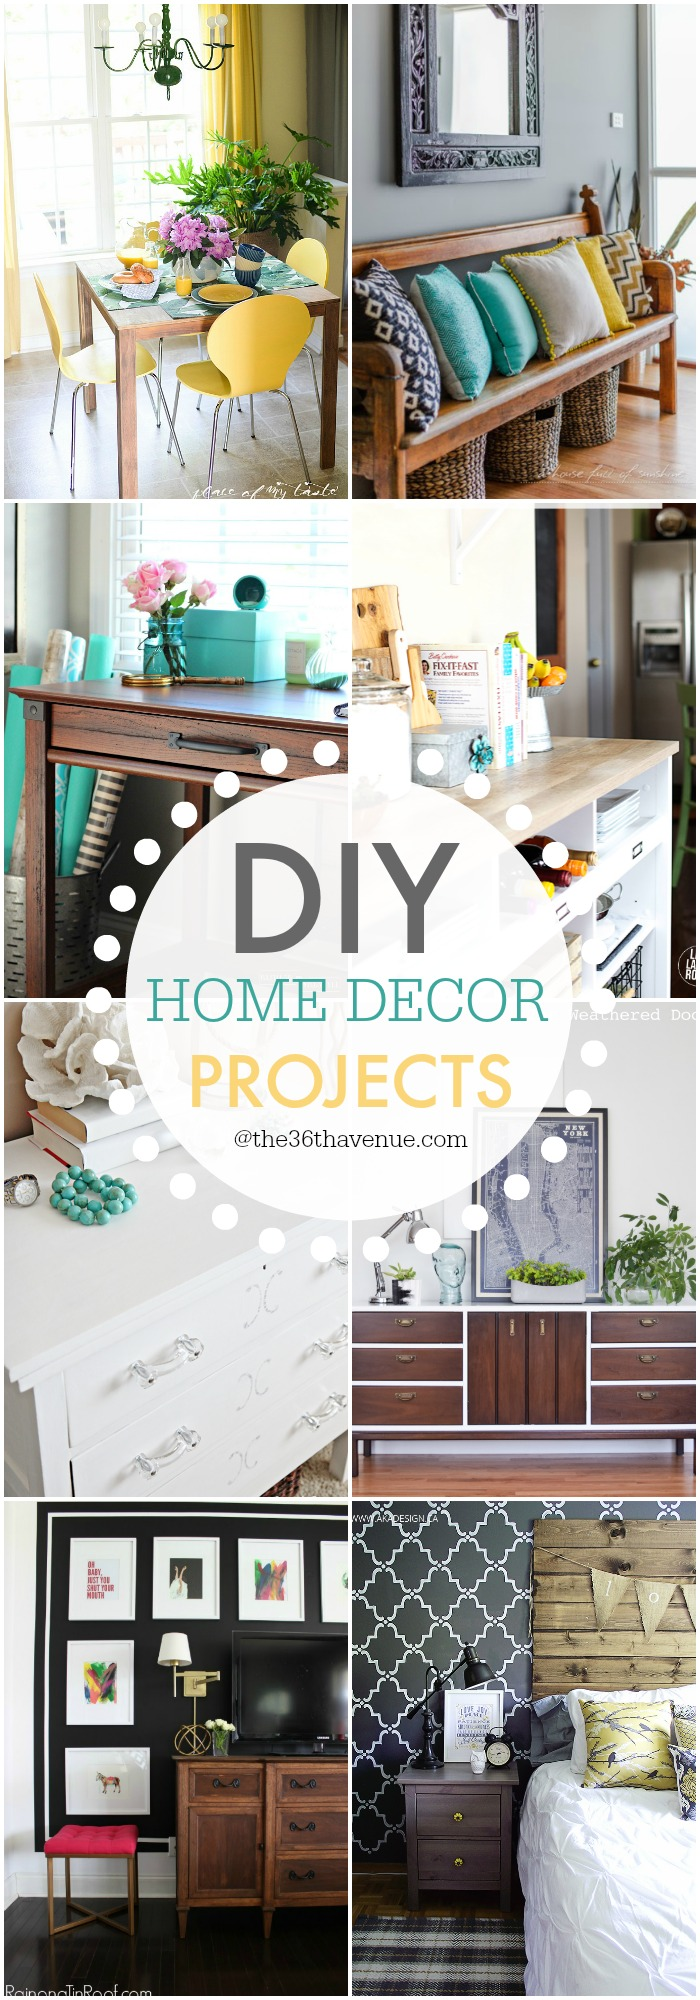 The 36th avenue diy home decor projects and ideas the 36th avenue New ideas in home design